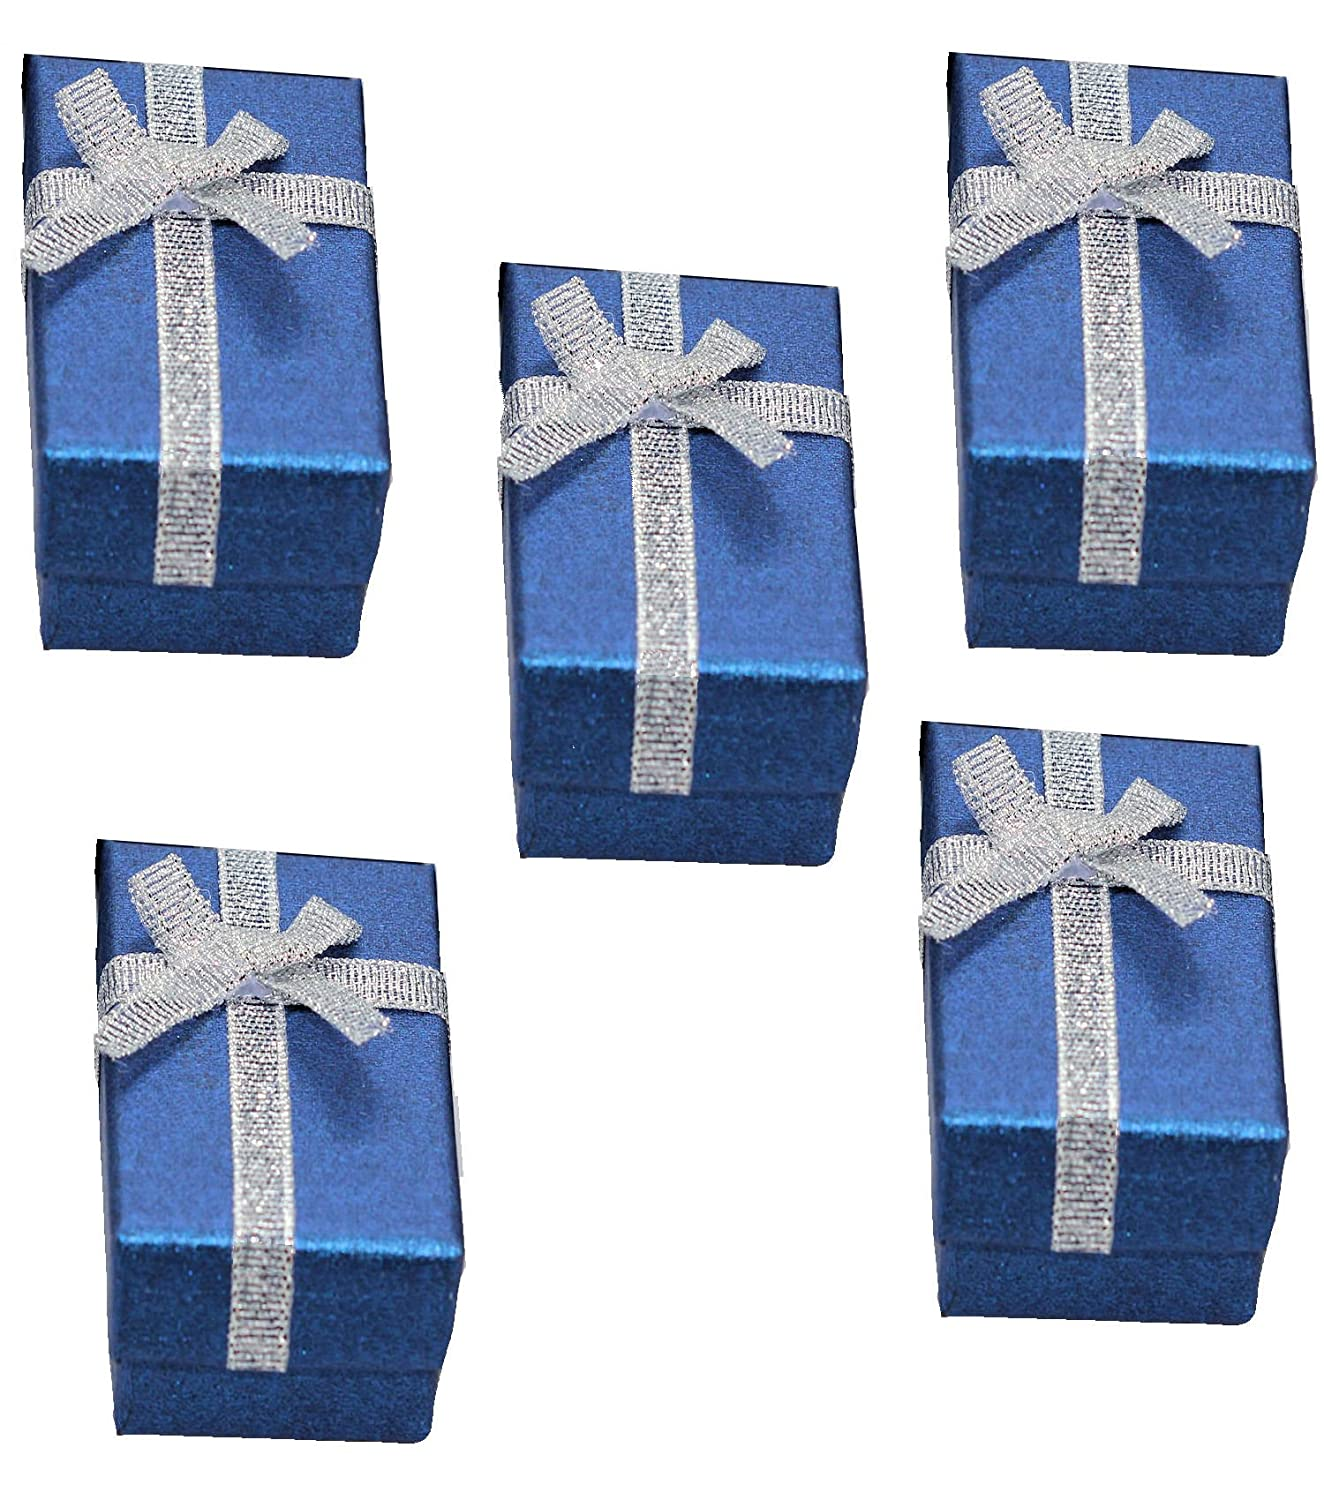 Blue Jewelry Boxes for Women | Ring Earring Bracelet Jewelry Gift Box Paper Cardboard | Small Jewelry Boxes All Blue with Silver Bowknot | Set of 10 C&C